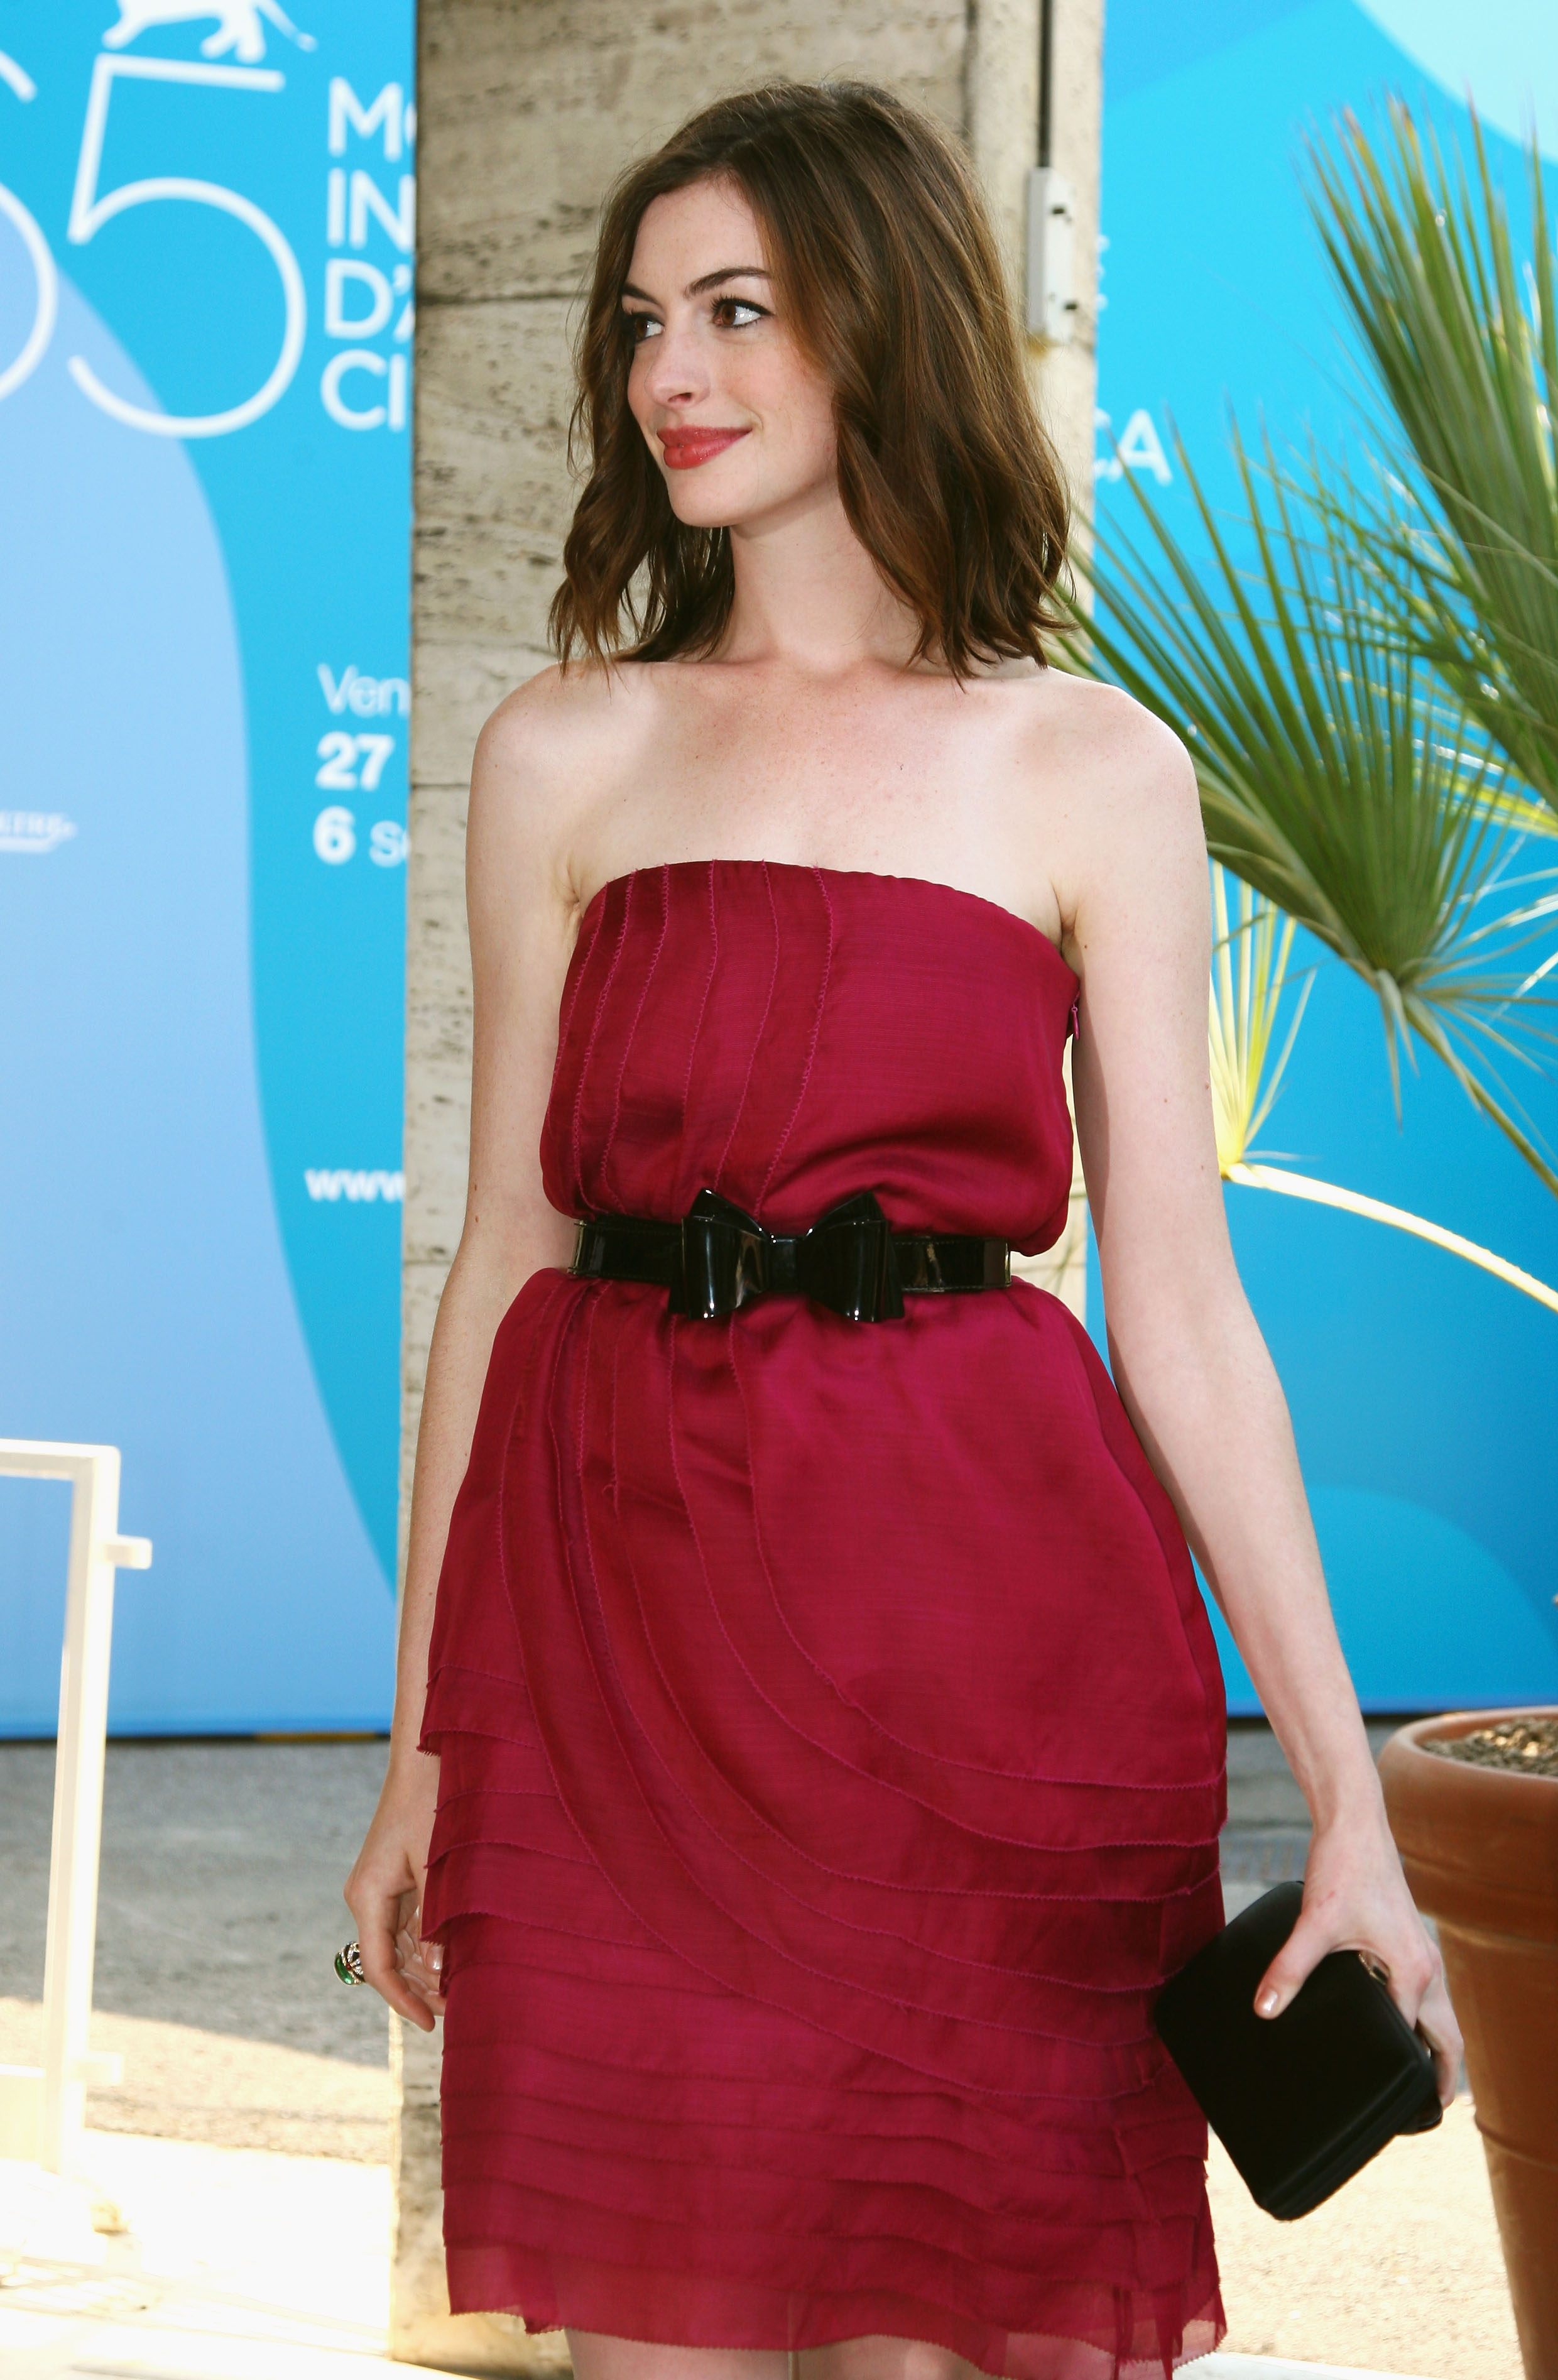 39368_Celebutopia-Anne_Hathaway_arrives_at_the_Excelsior_Hotel_during_the_65th_Venice_Film_Festival-23_122_158lo.jpg